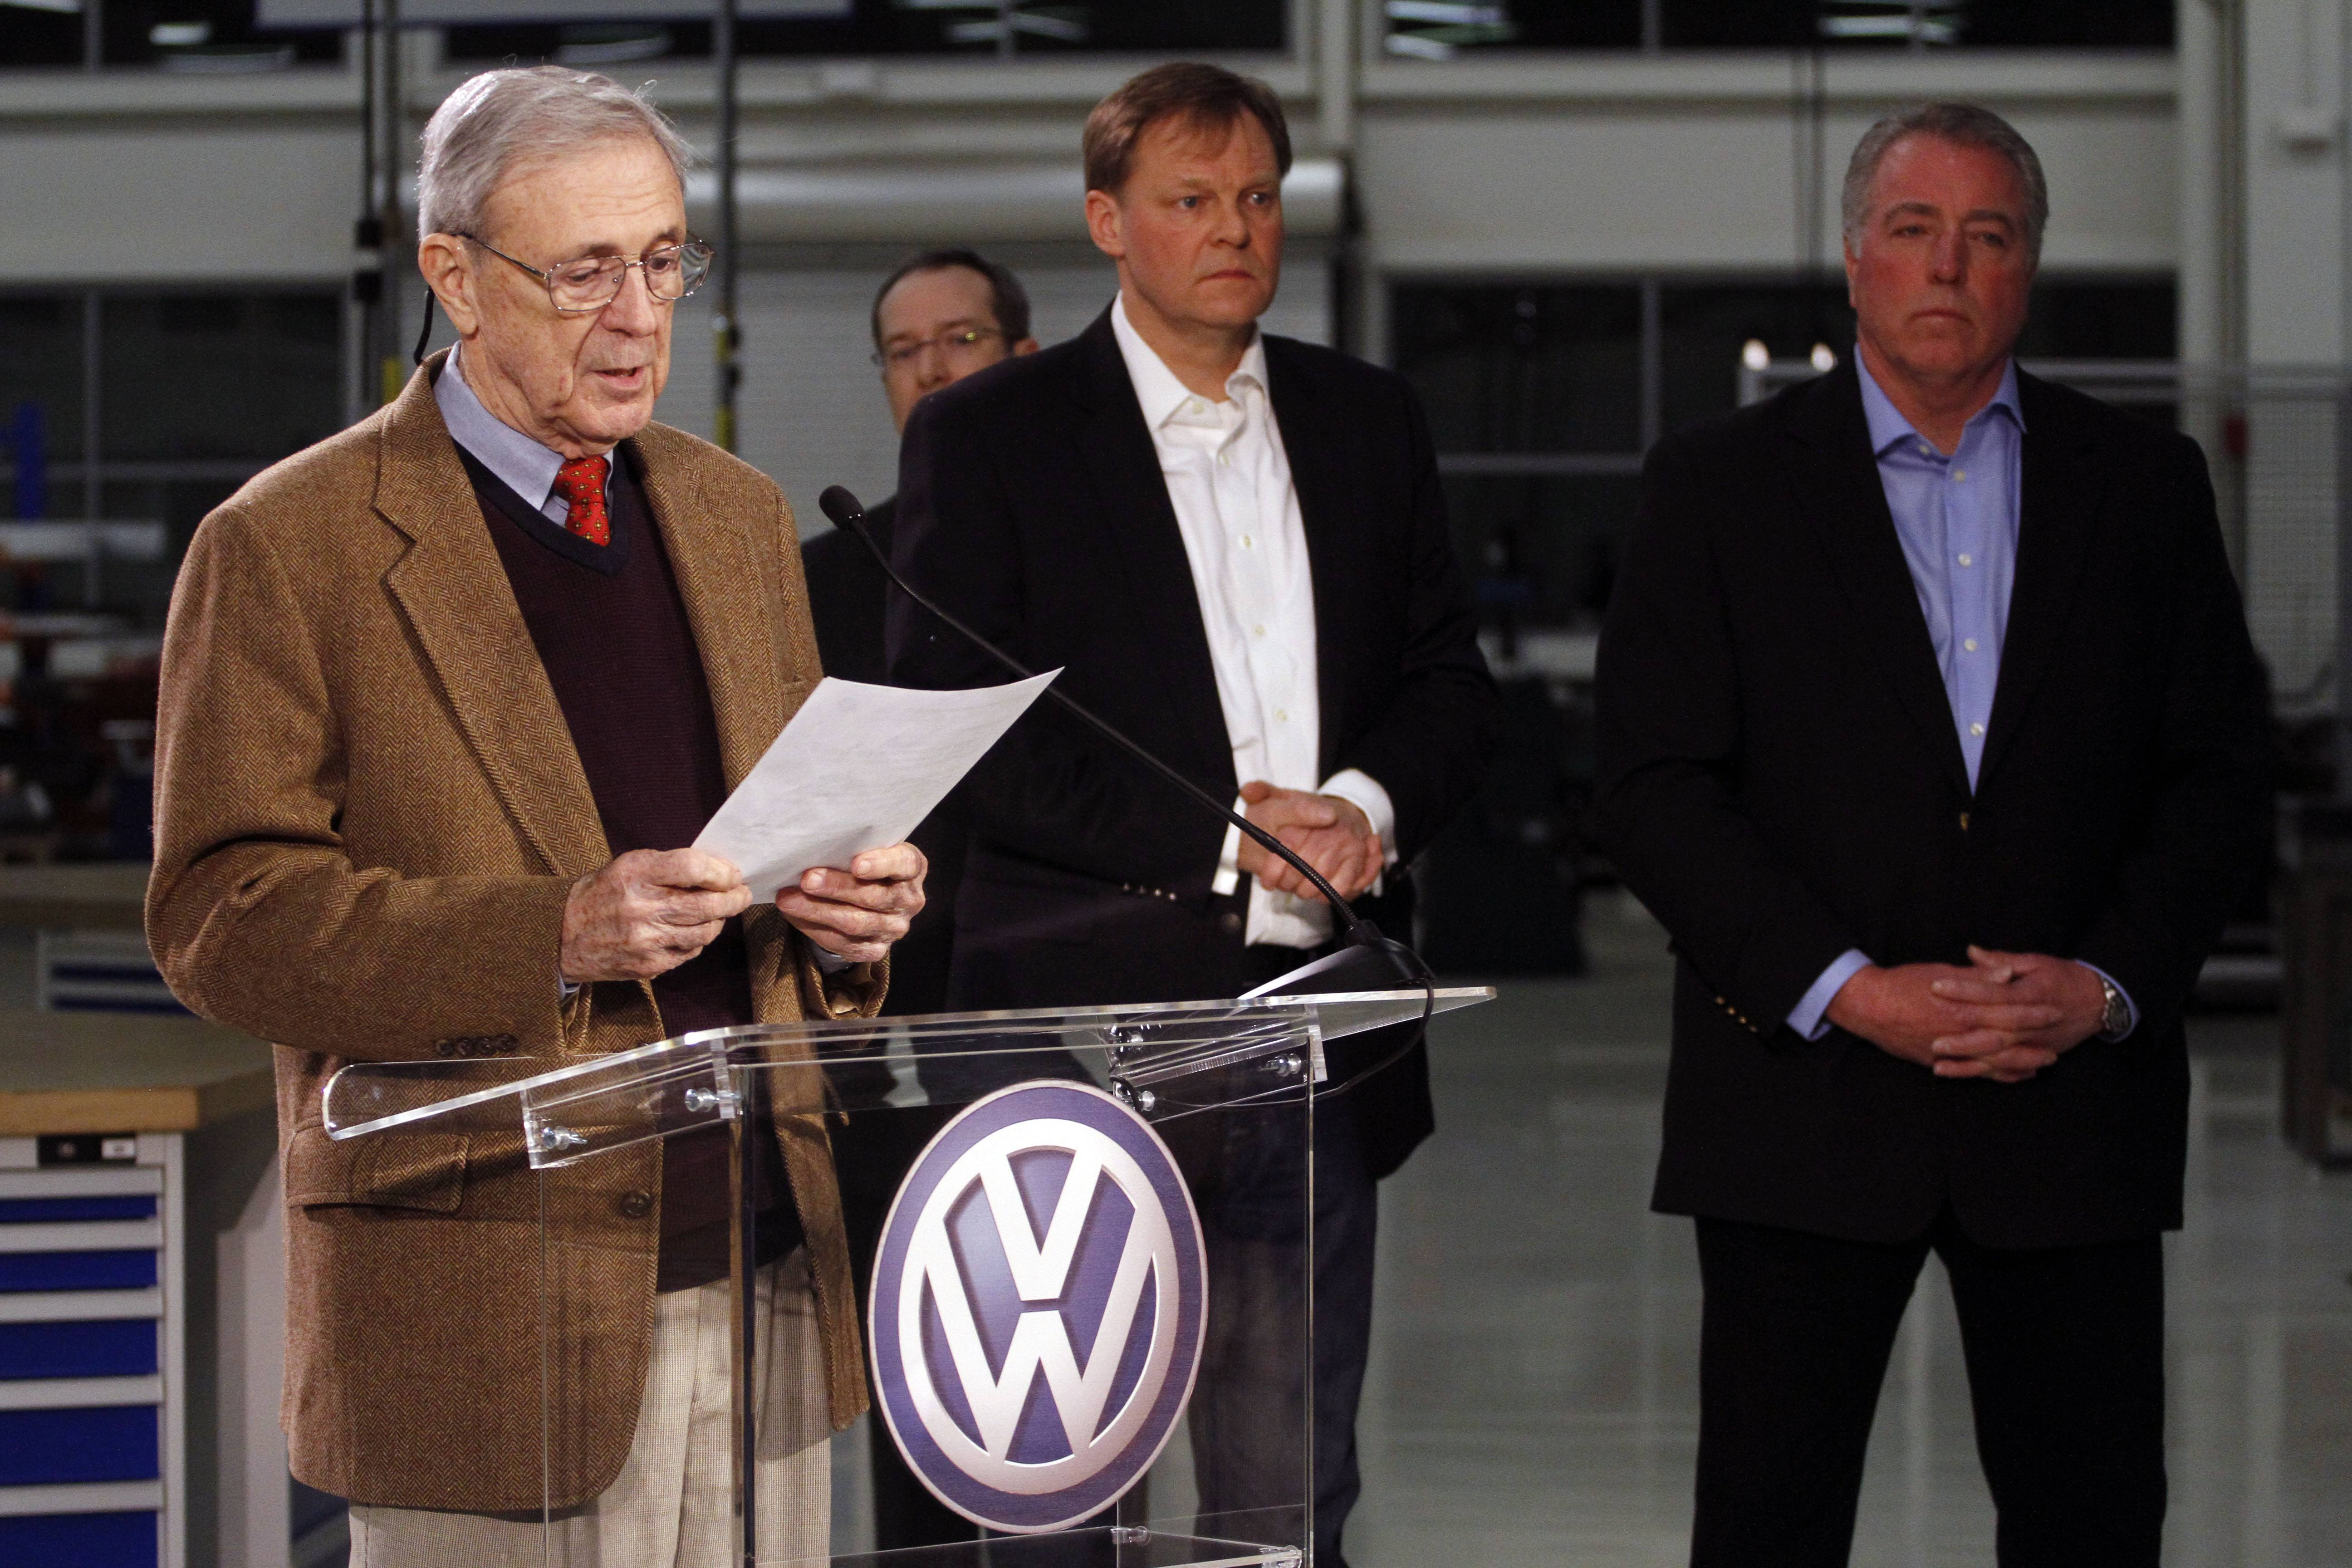 Retired circuit judge Sam Payne, left, announces Friday that Volkswagen employees voted to deny representation by the United Auto Workers union as Frank Fischer, Chairman and CEO of the Volkswagen Group of America, center, and Gary Casteel, UAW Region 8 Director, look on from behind in Chattanooga, Tenn. The multiyear effort to organize Volkswagen's only U.S. plant was defeated on a 712-626 vote Friday night amid heavy campaigning on both sides. Mike Jarvis, who was among the group of workers in the plant that organized to fight the UAW, said his colleagues were unwilling to risk hurting the plant.